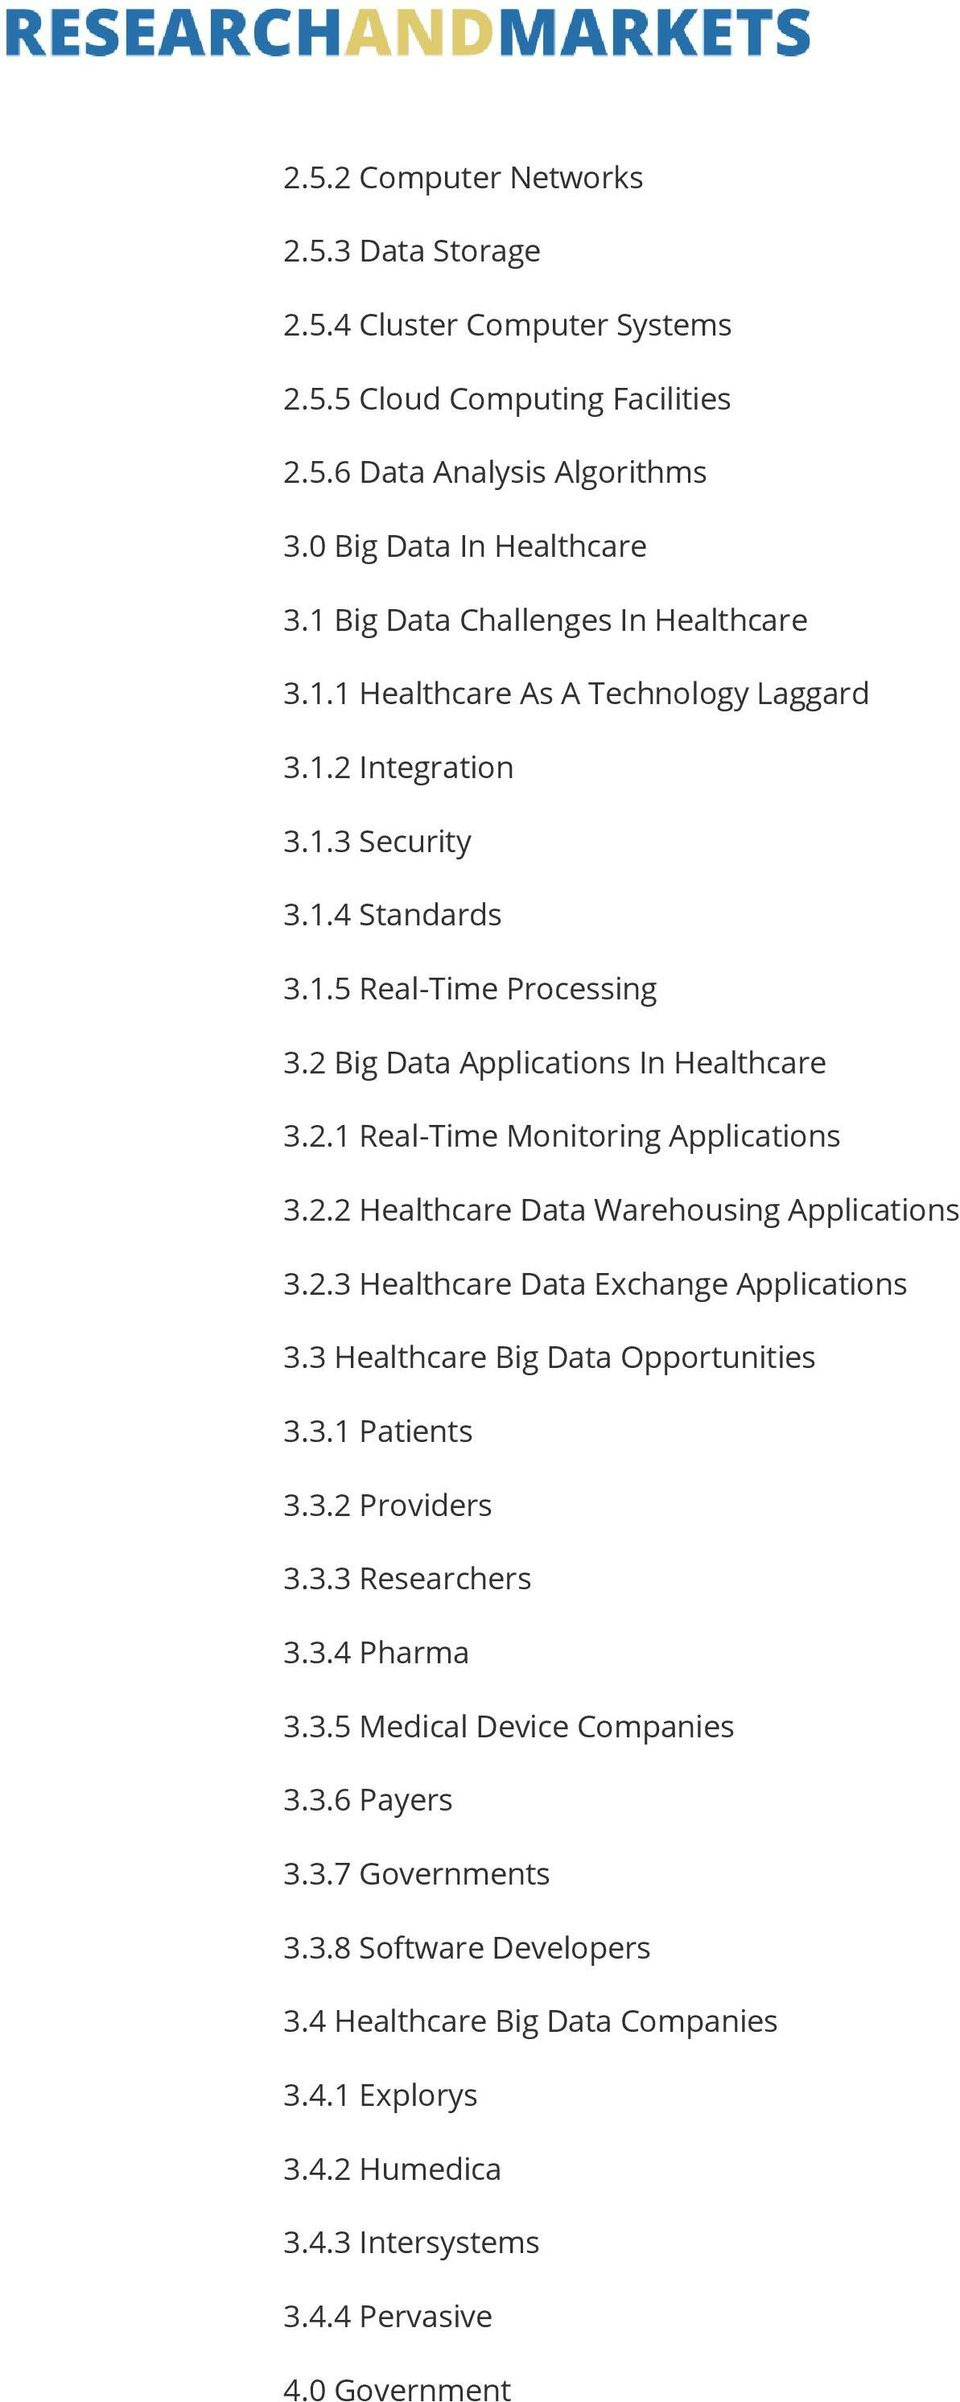 2.2 Healthcare Data Warehousing Applications 3.2.3 Healthcare Data Exchange Applications 3.3 Healthcare Big Data Opportunities 3.3.1 Patients 3.3.2 Providers 3.3.3 Researchers 3.3.4 Pharma 3.3.5 Medical Device Companies 3.